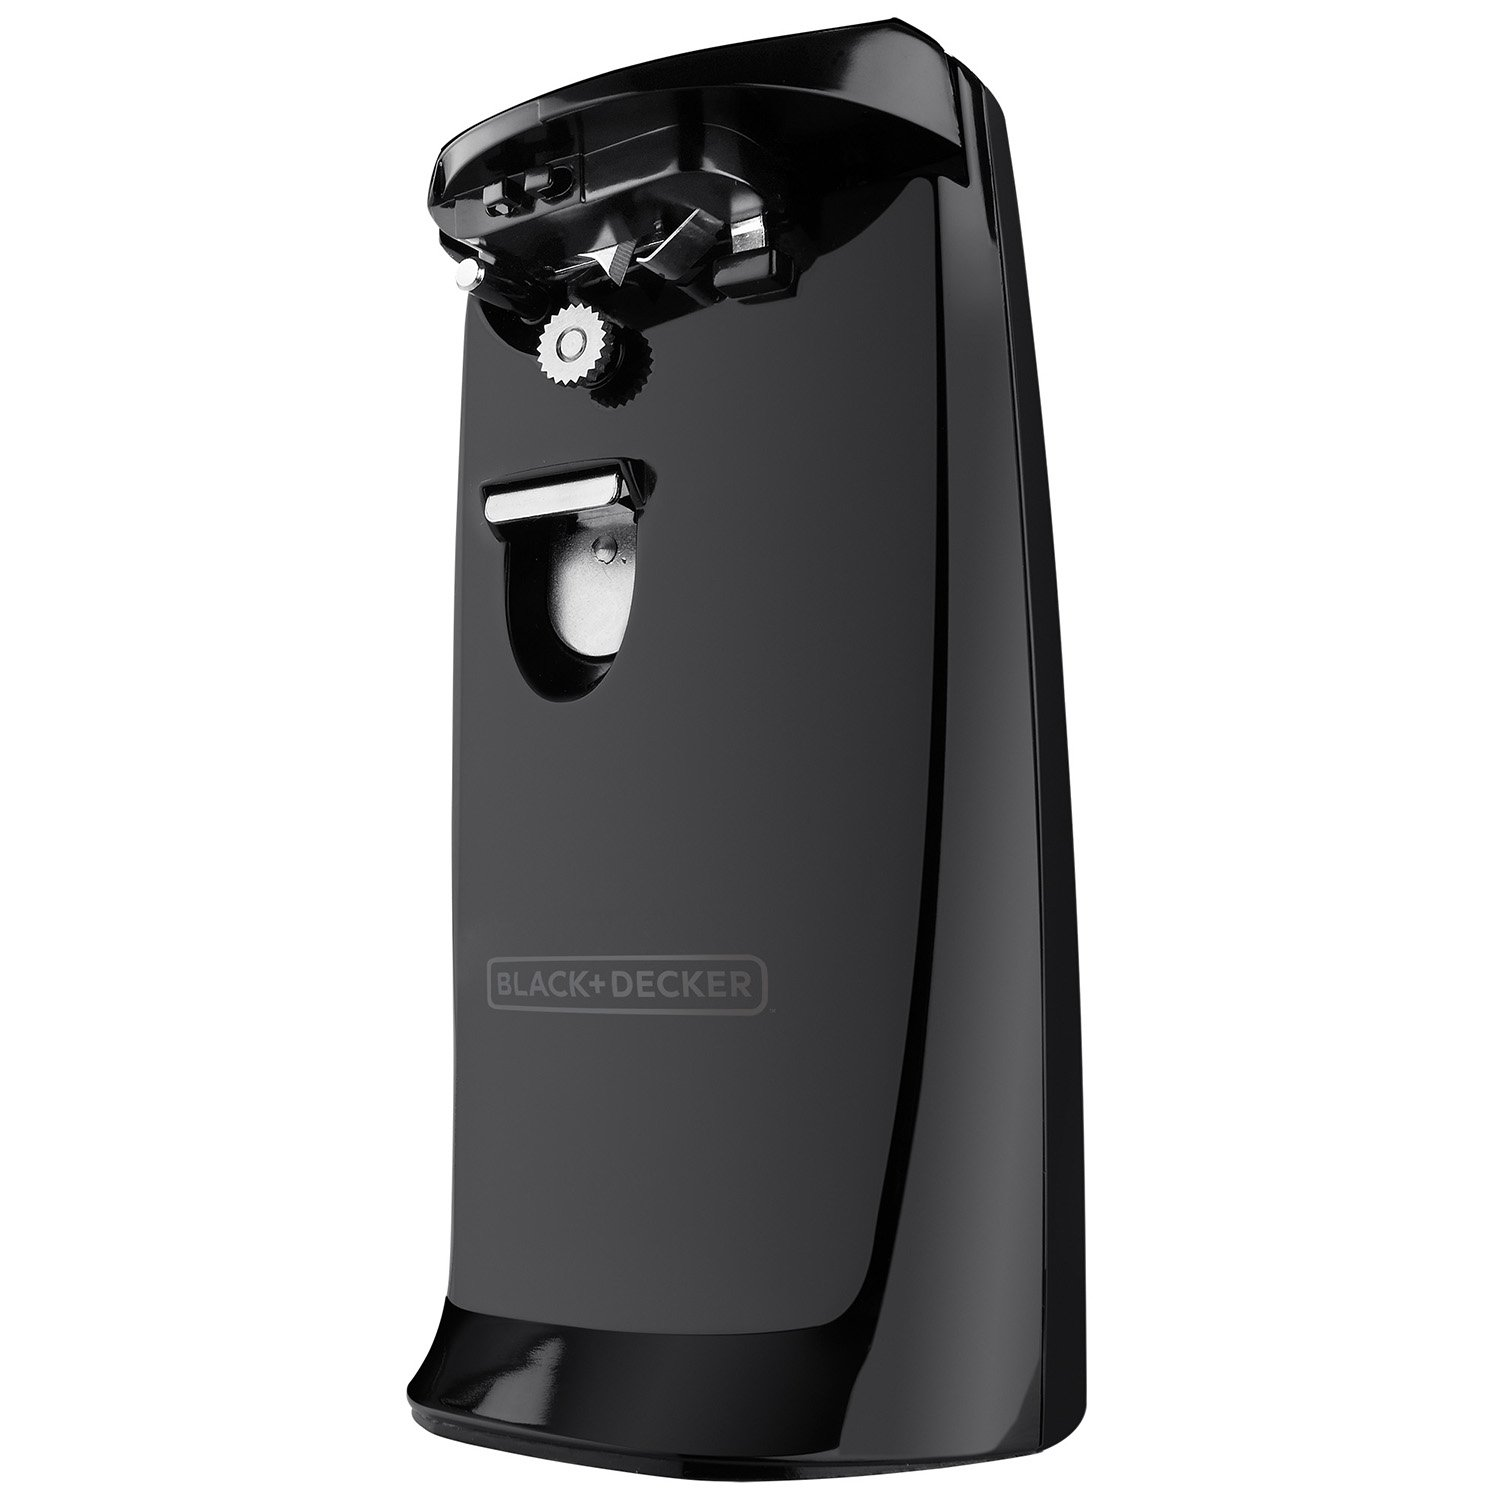 Black & Decker EC475B-2 Electric Can Opener, COMPACT, Black by Black & Decker